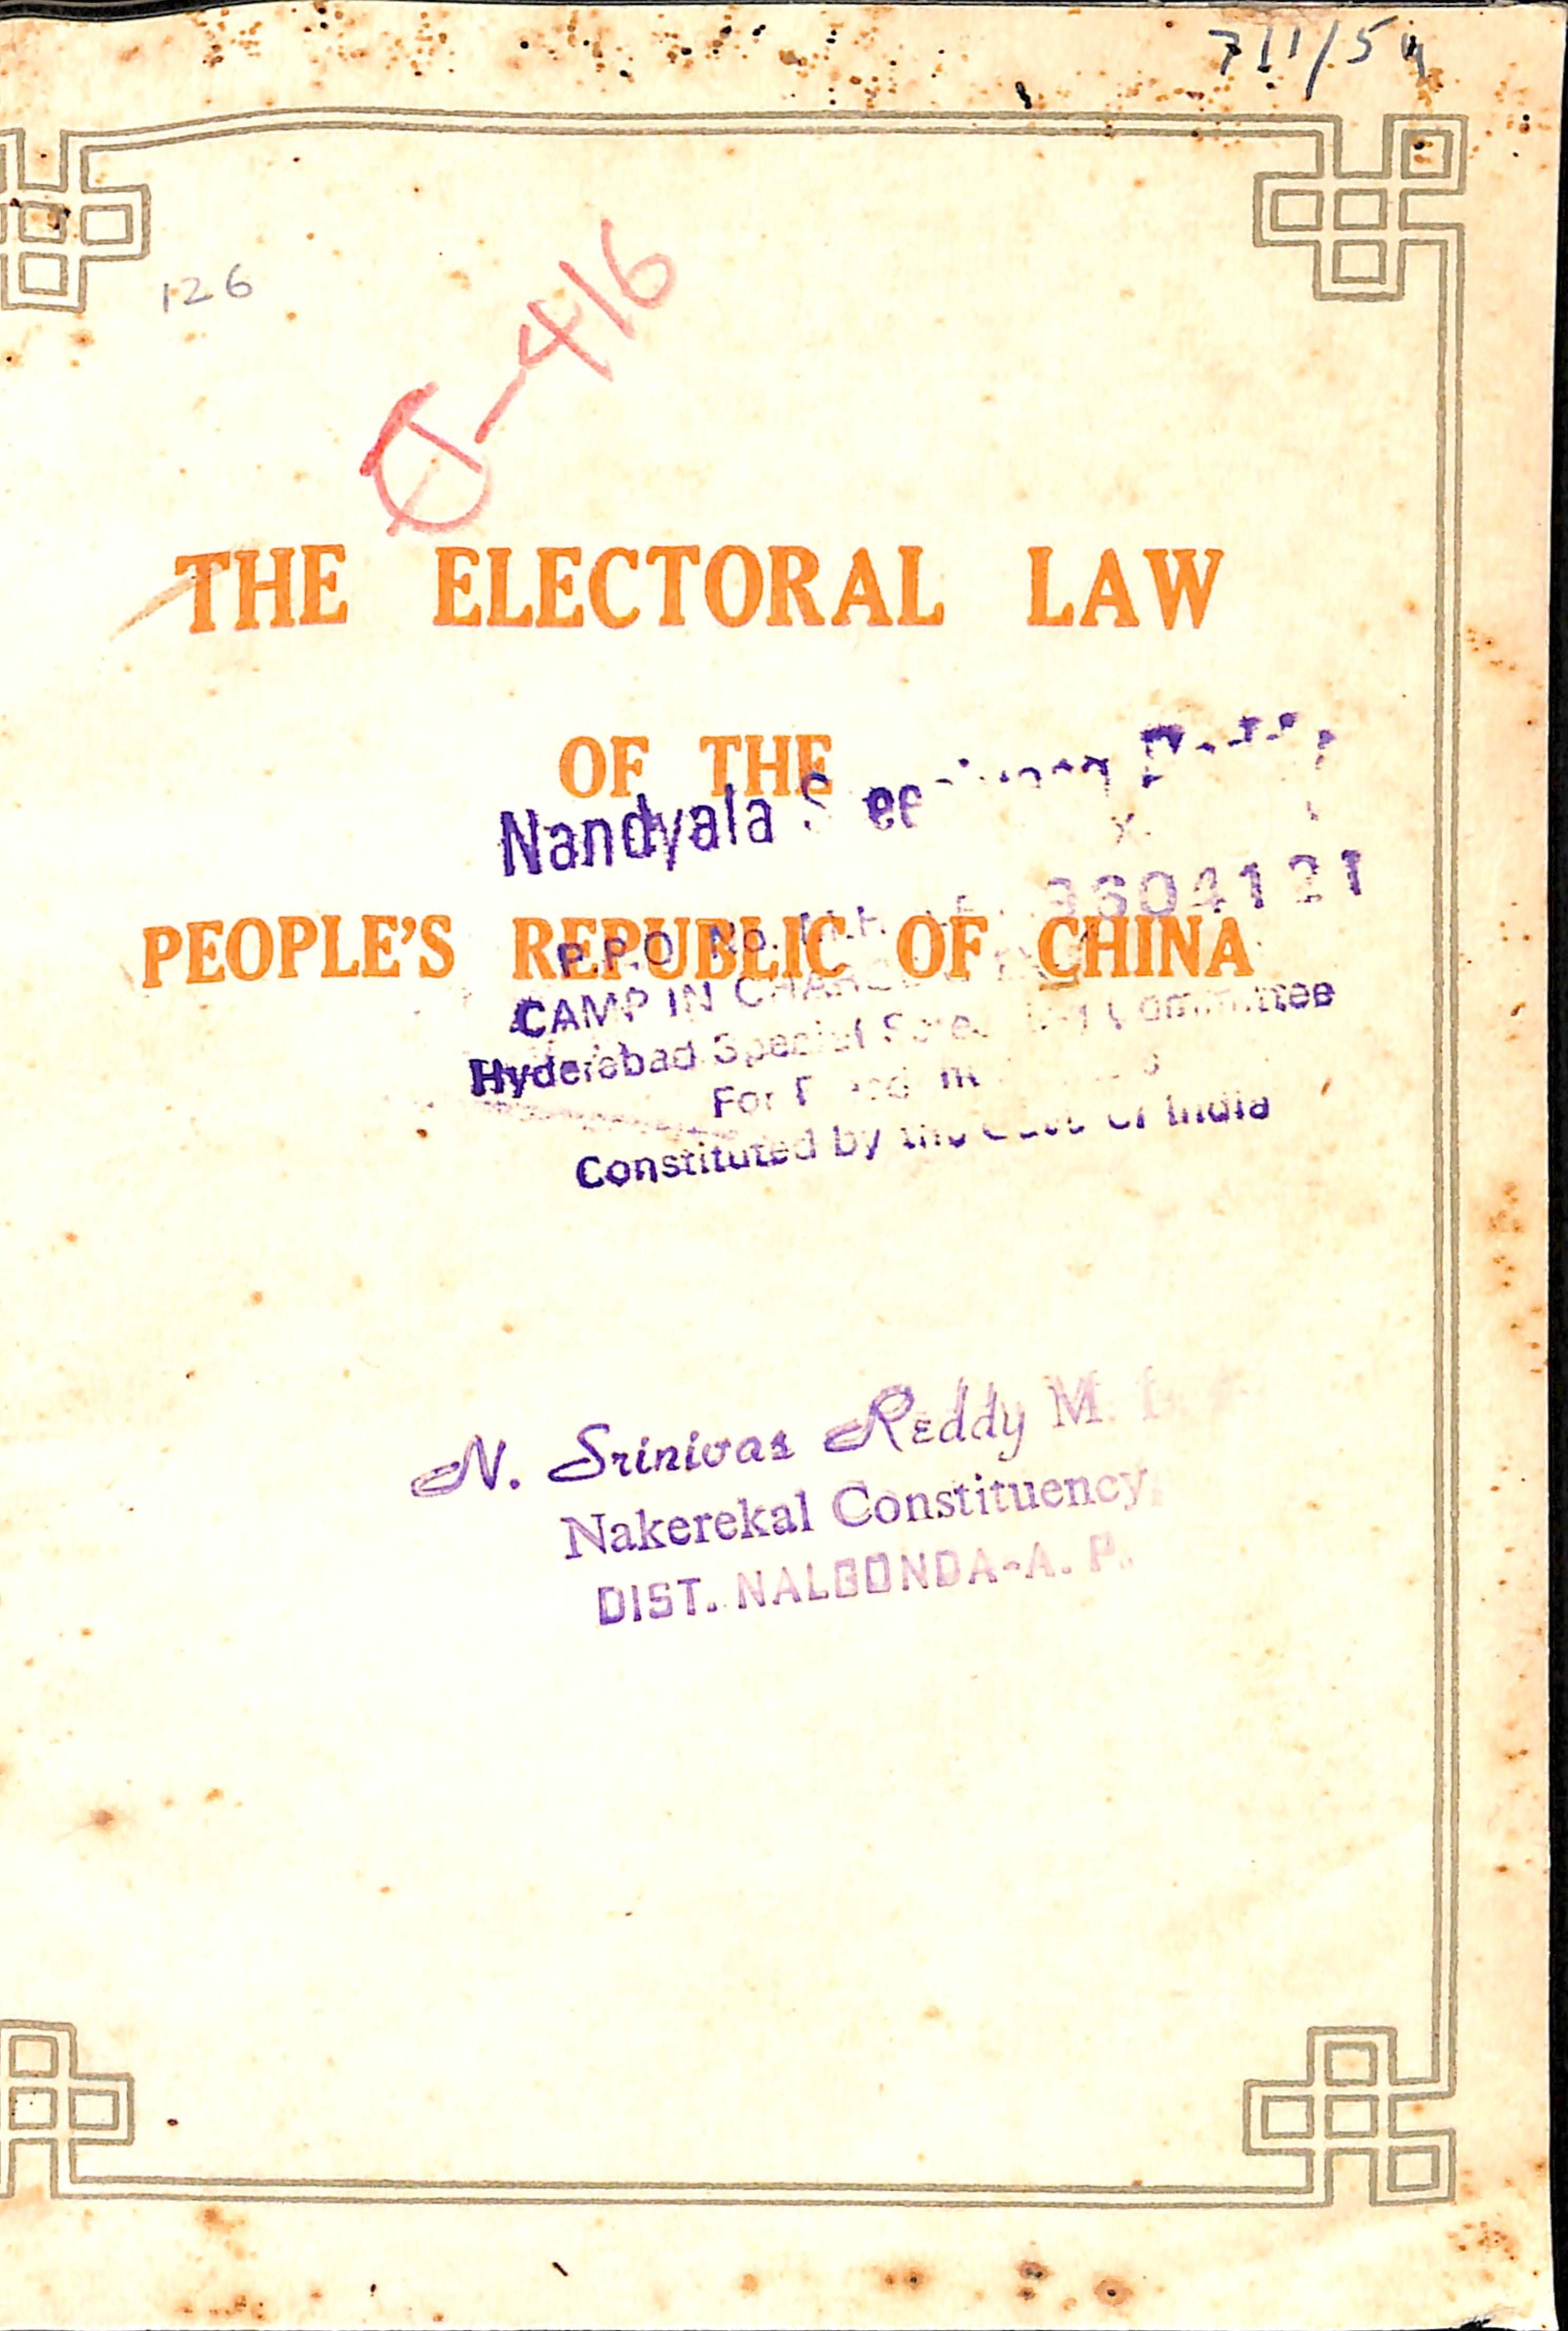 The Electoral Law of the People,s Repbulic of China for the All